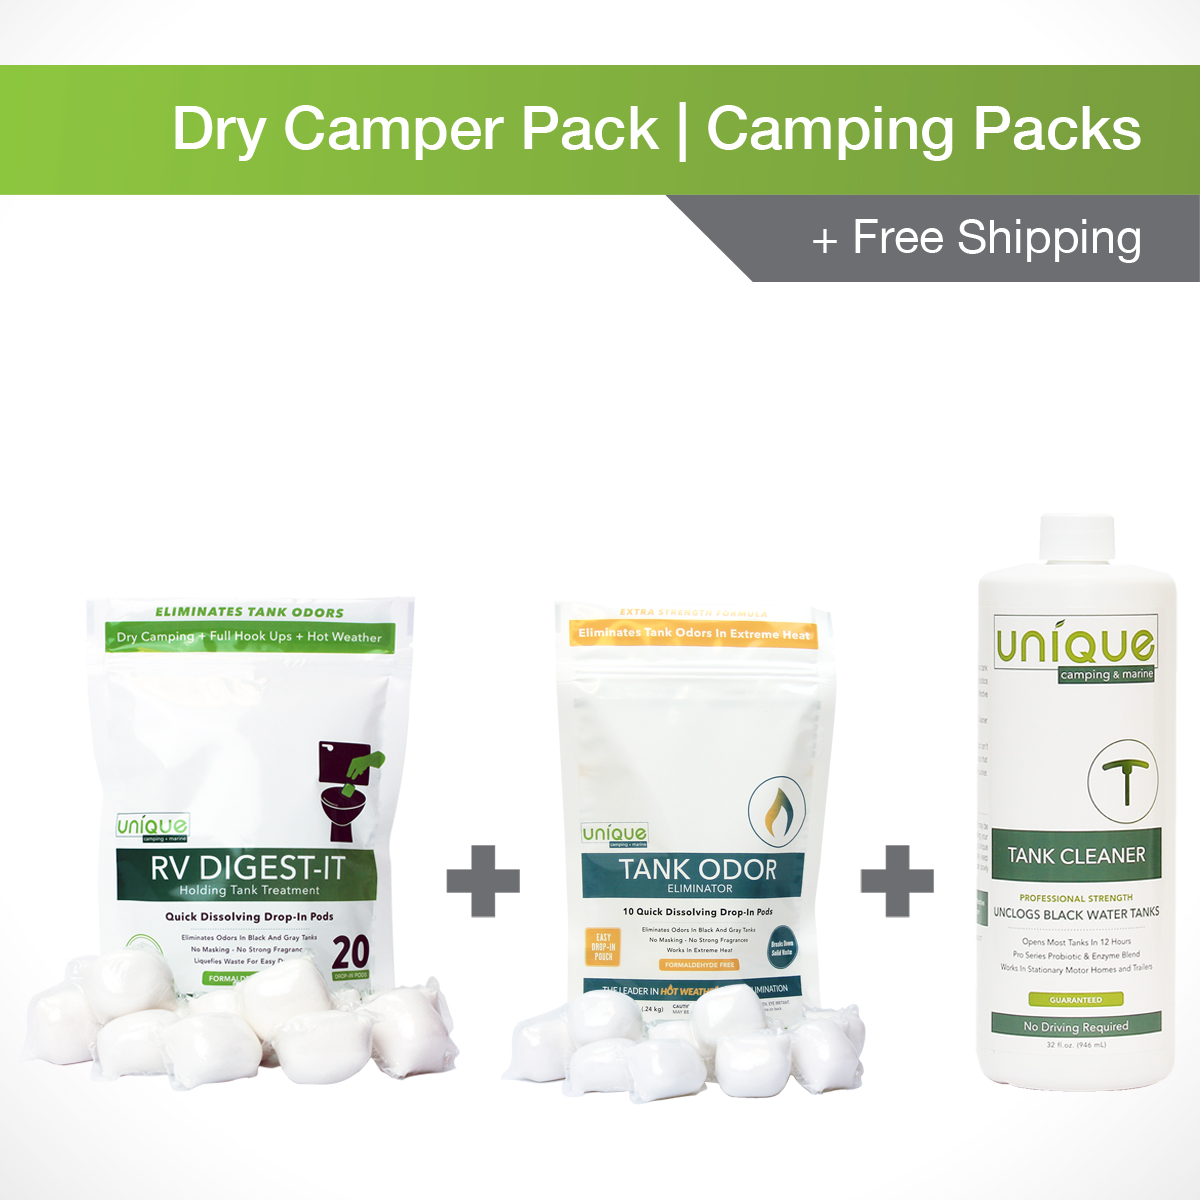 Dry Camper Camping Pack, Includes RV Digest-It 20 pack, Tank Odor Eliminator and Tank Cleaner - Unique Camping + Marine